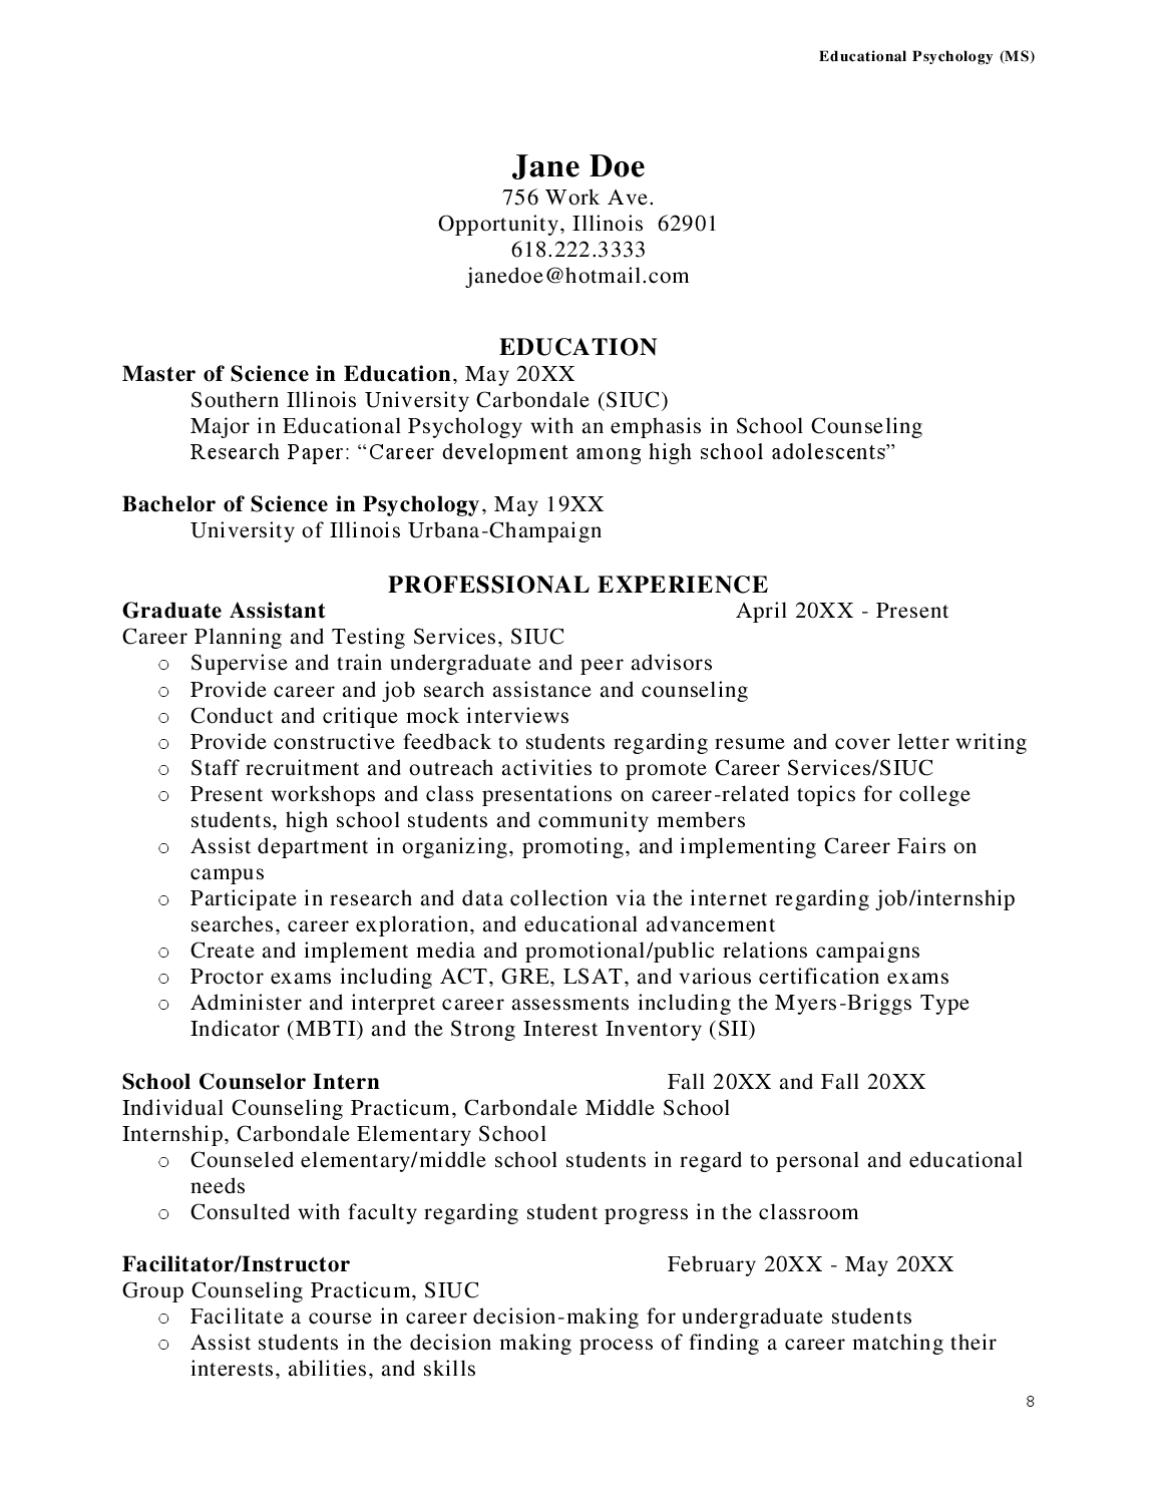 Uiuc Resume Siu Resume Sample By Southern Illinois University